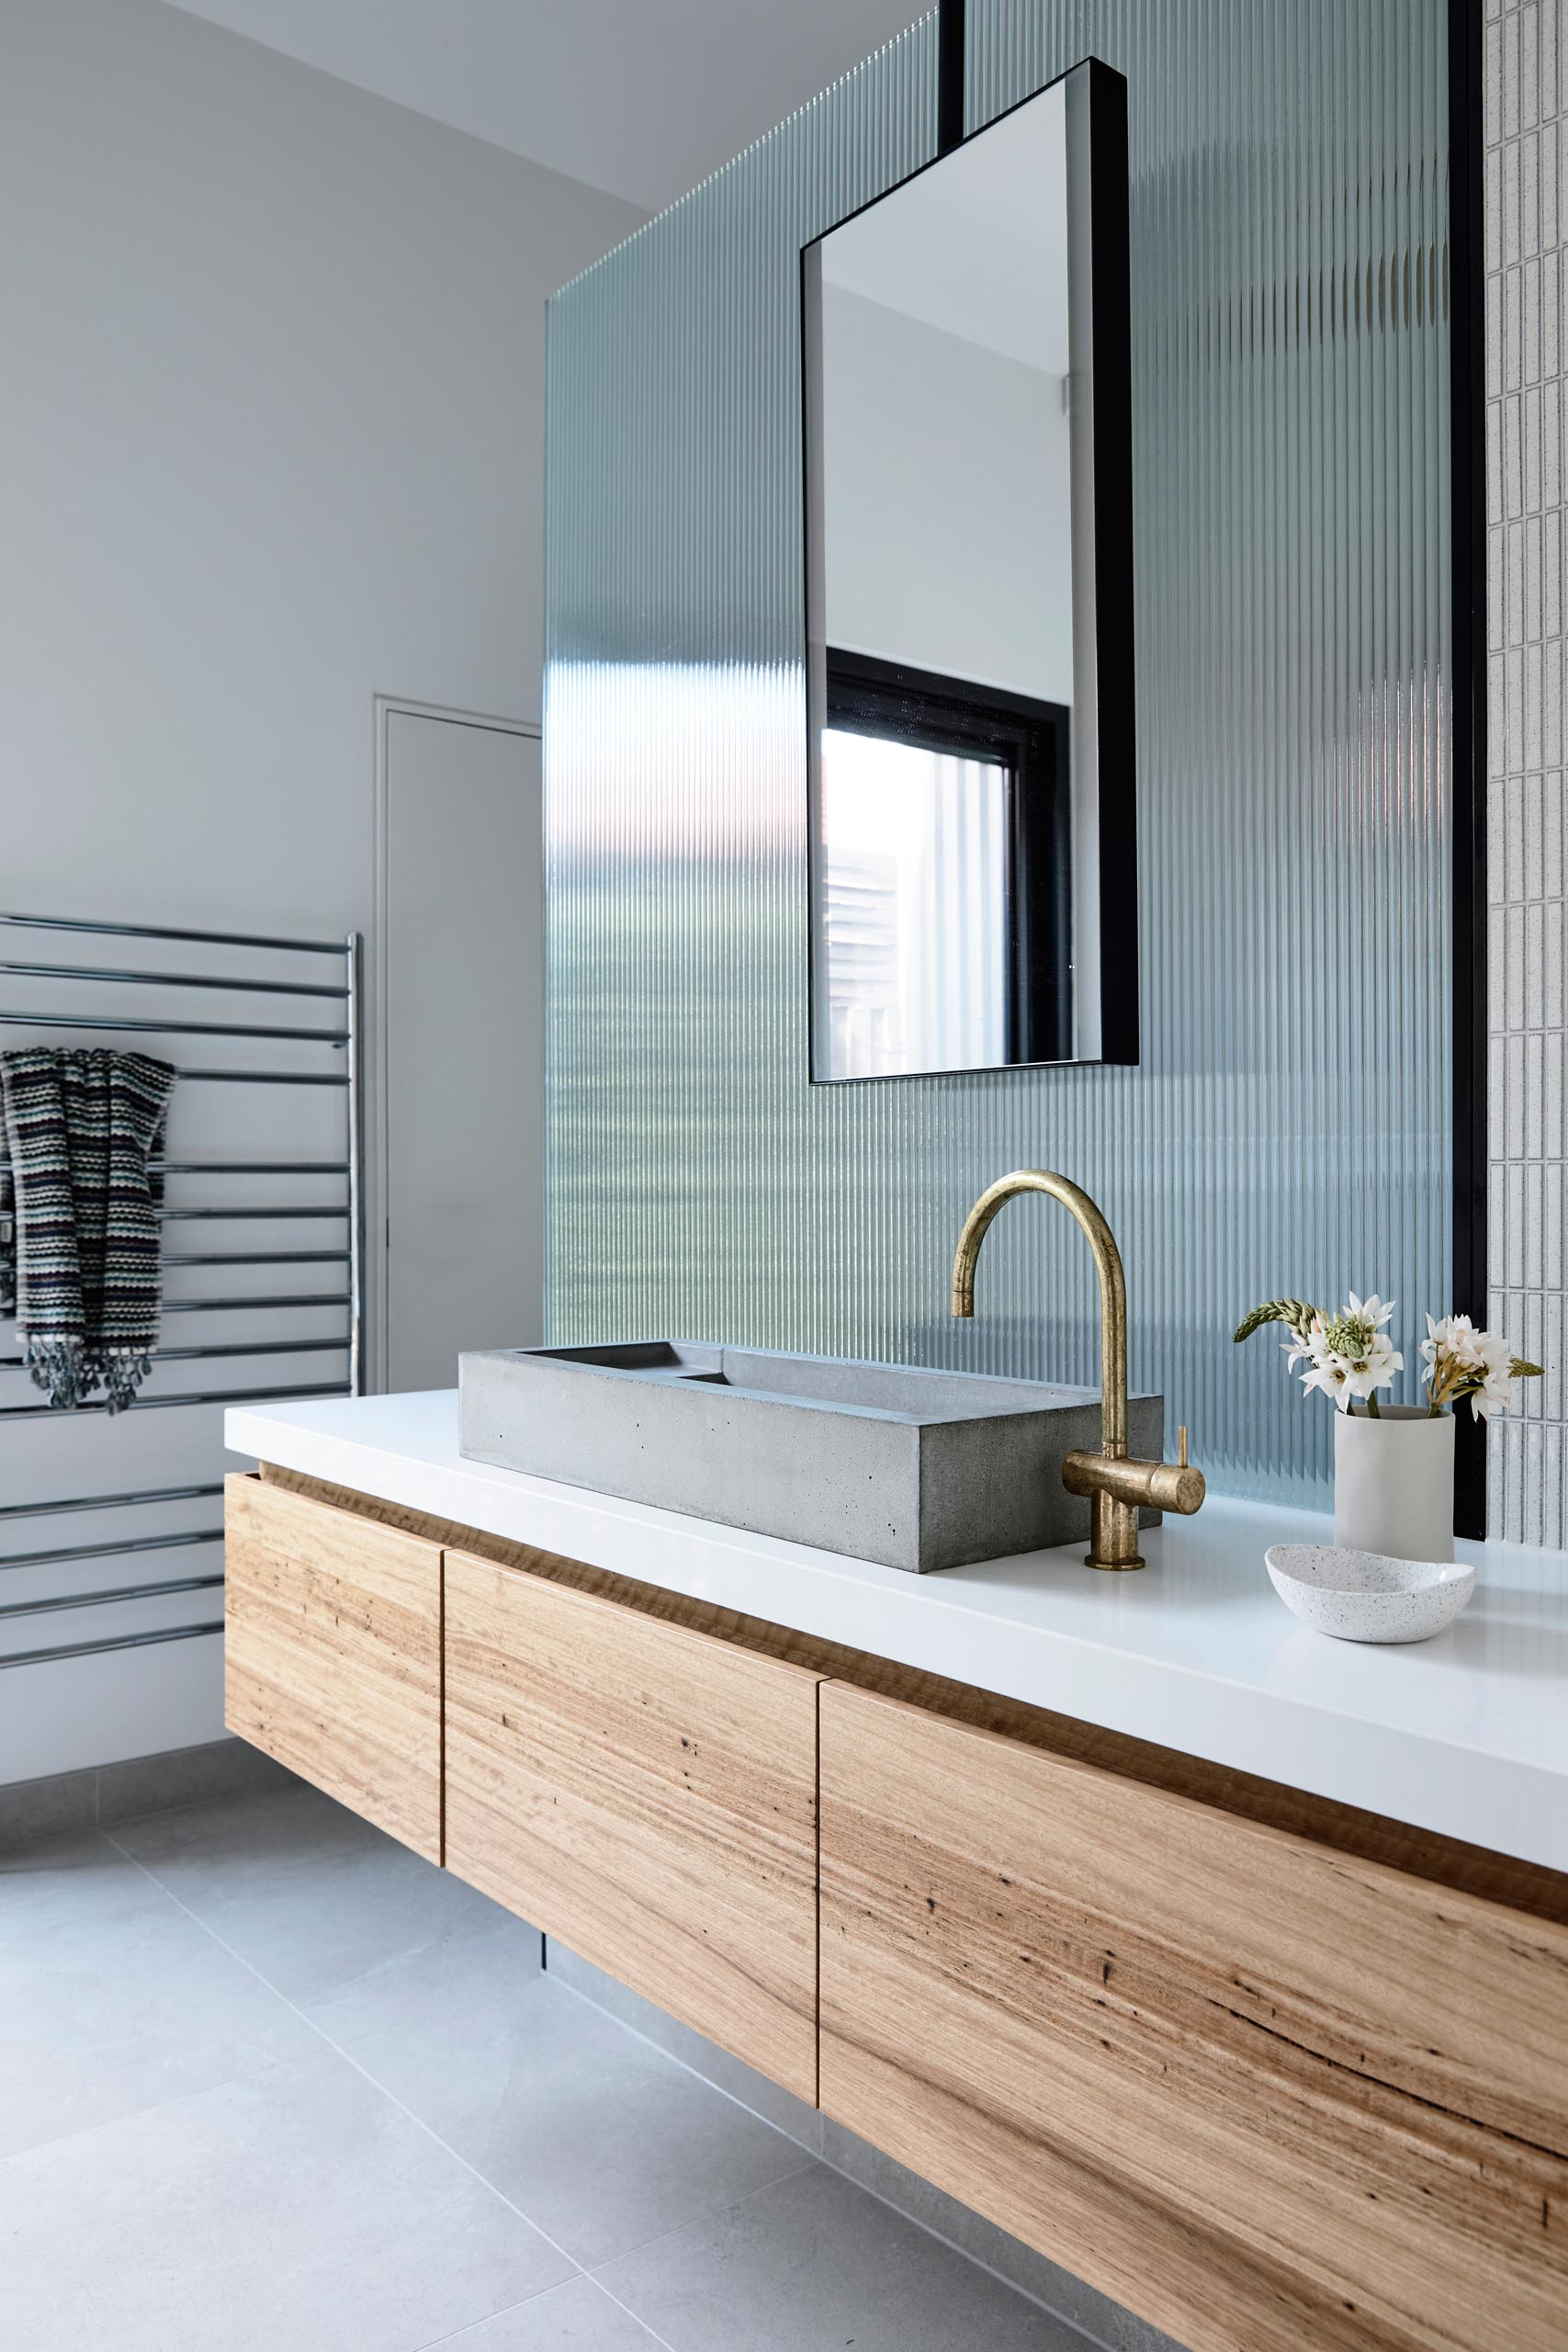 A modern bathroom with a long wood vanity, a concrete sink, bronze faucet, and a textured glass panel that hides the shower.